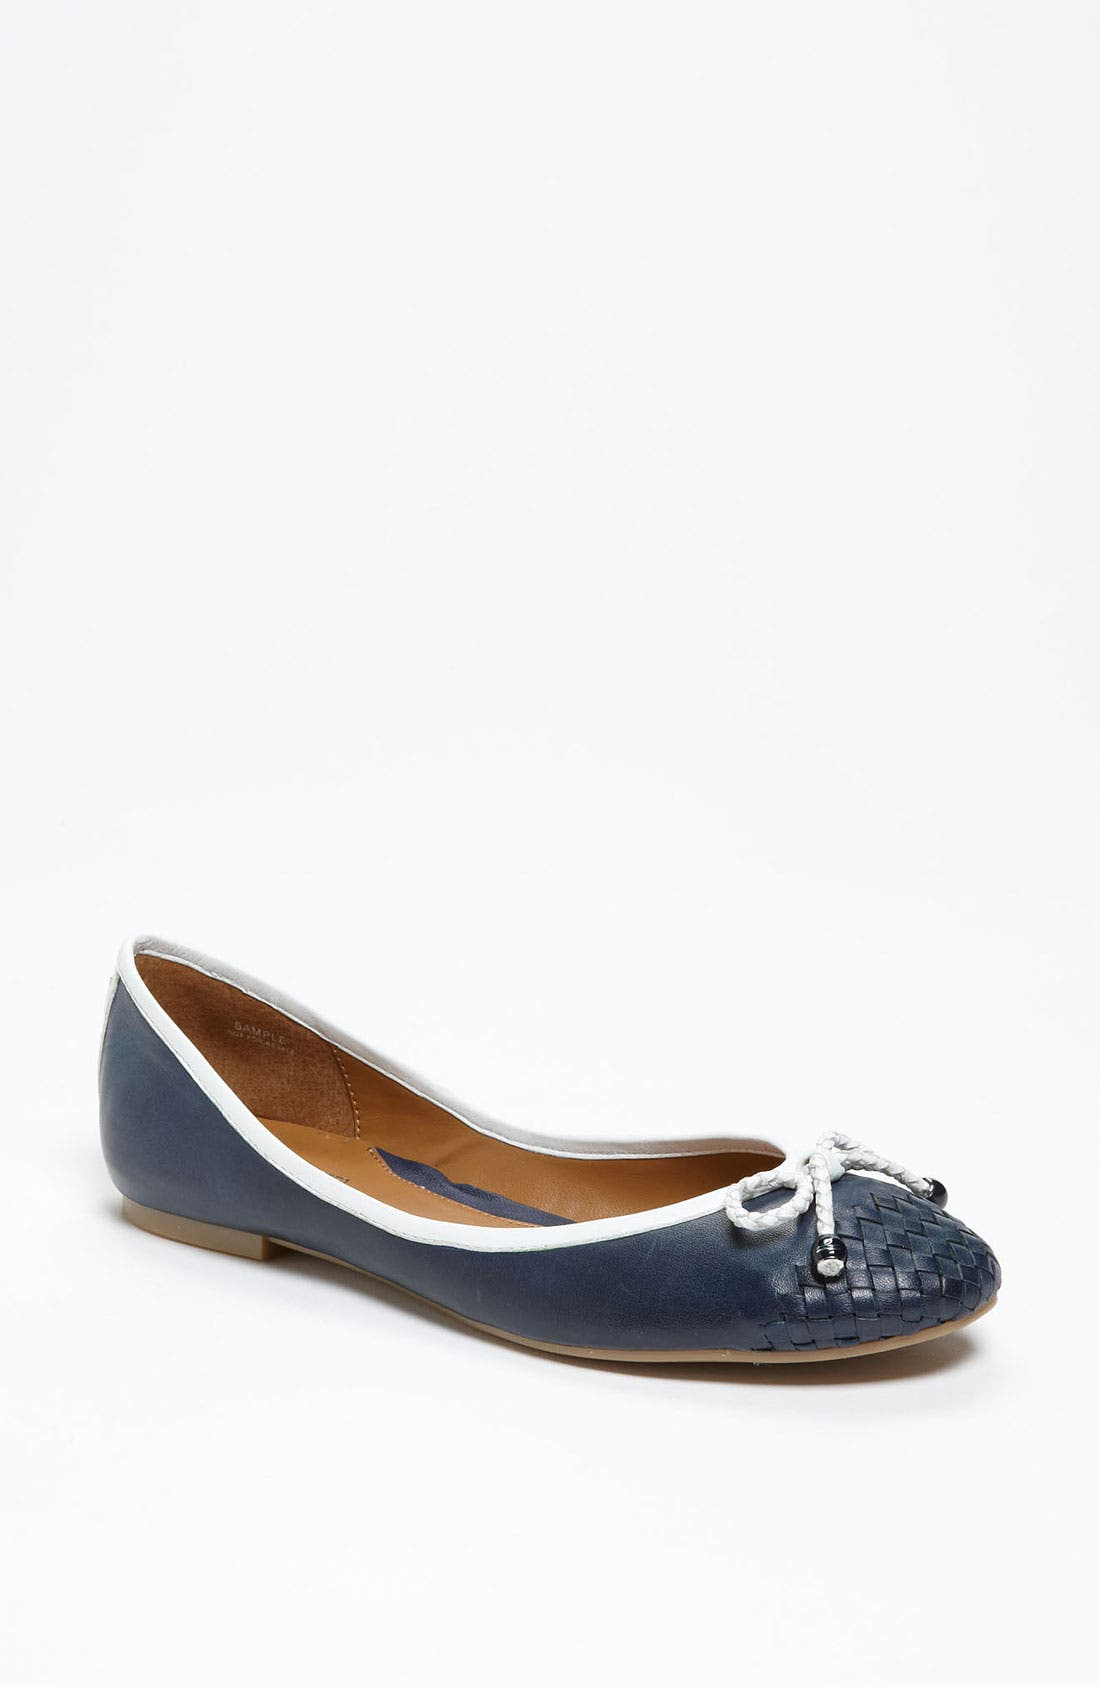 Alternate Image 1 Selected - Sperry Top-Sider® 'Maya' Flat